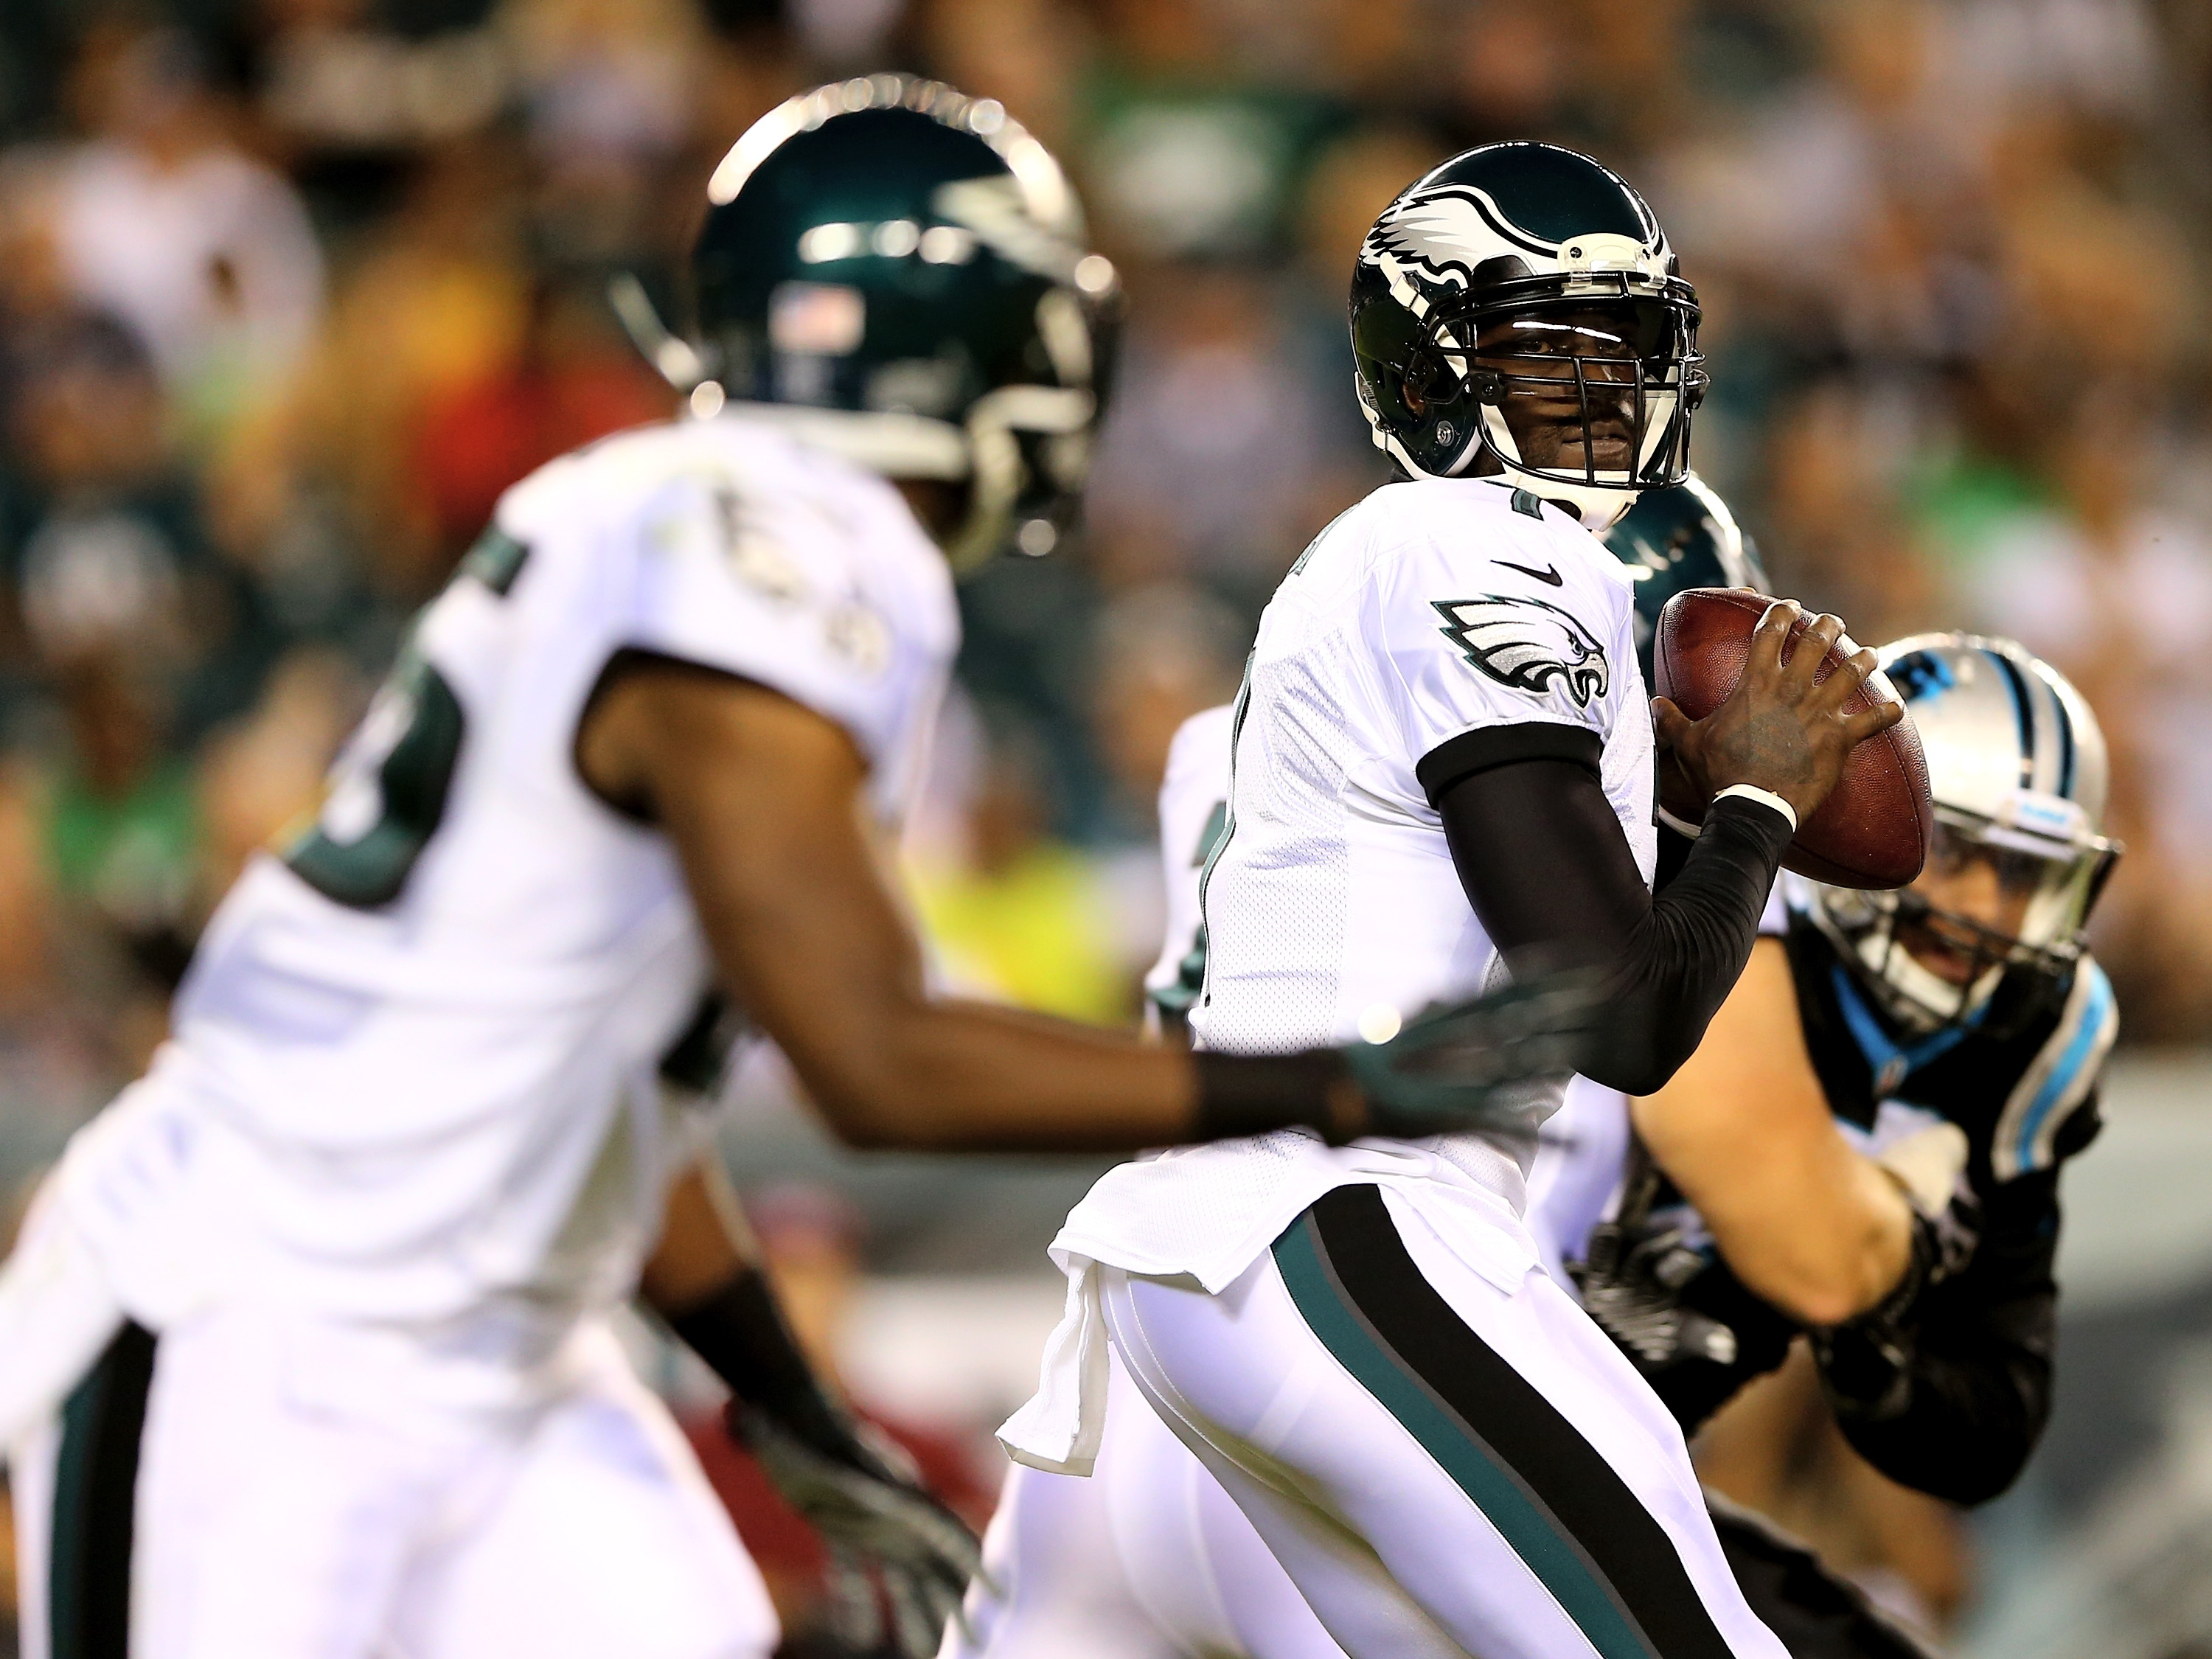 Injury risk looms large with Michael Vick and LeSean McCoy. (Getty)